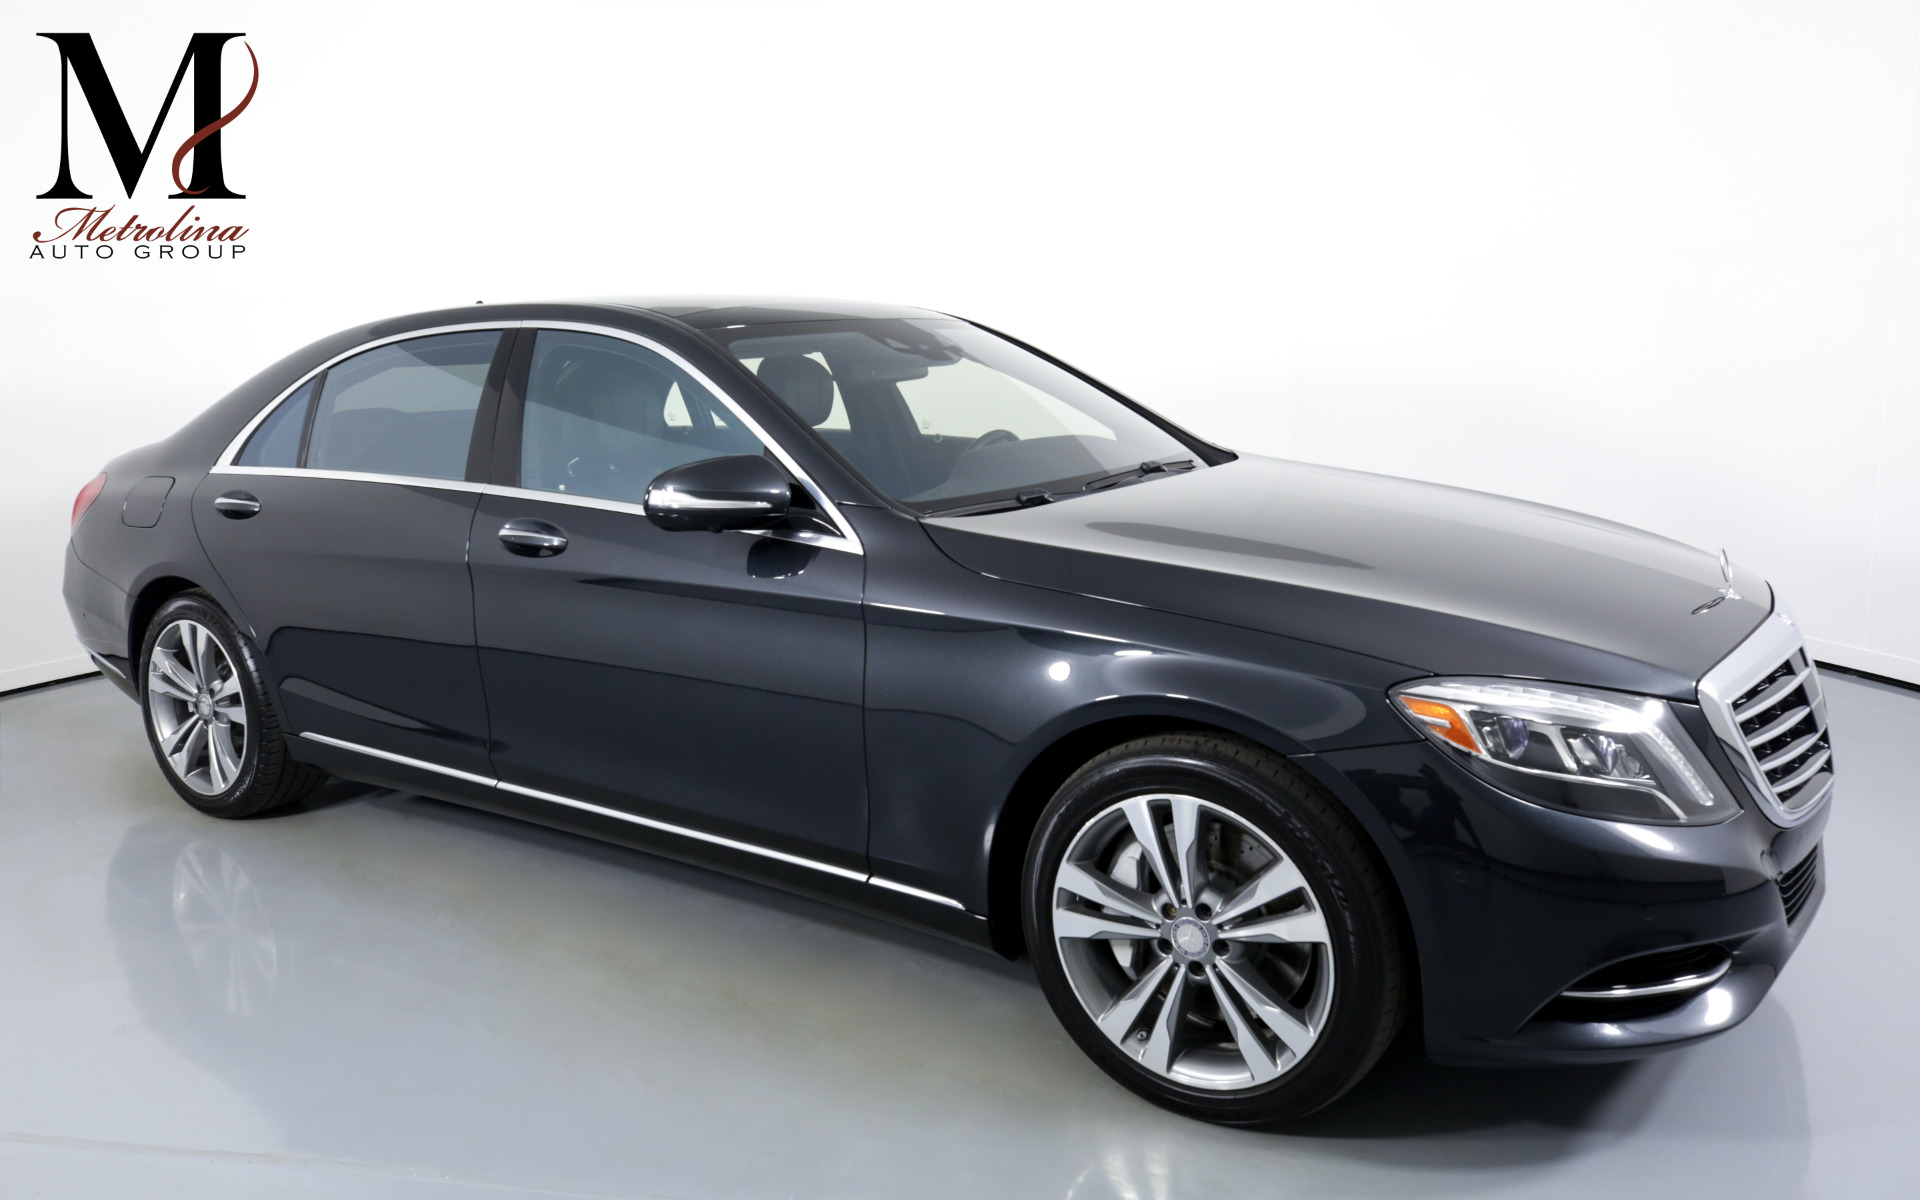 Used 2016 Mercedes-Benz S-Class S 550 4dr Sedan for sale $43,996 at Metrolina Auto Group in Charlotte NC 28217 - 1